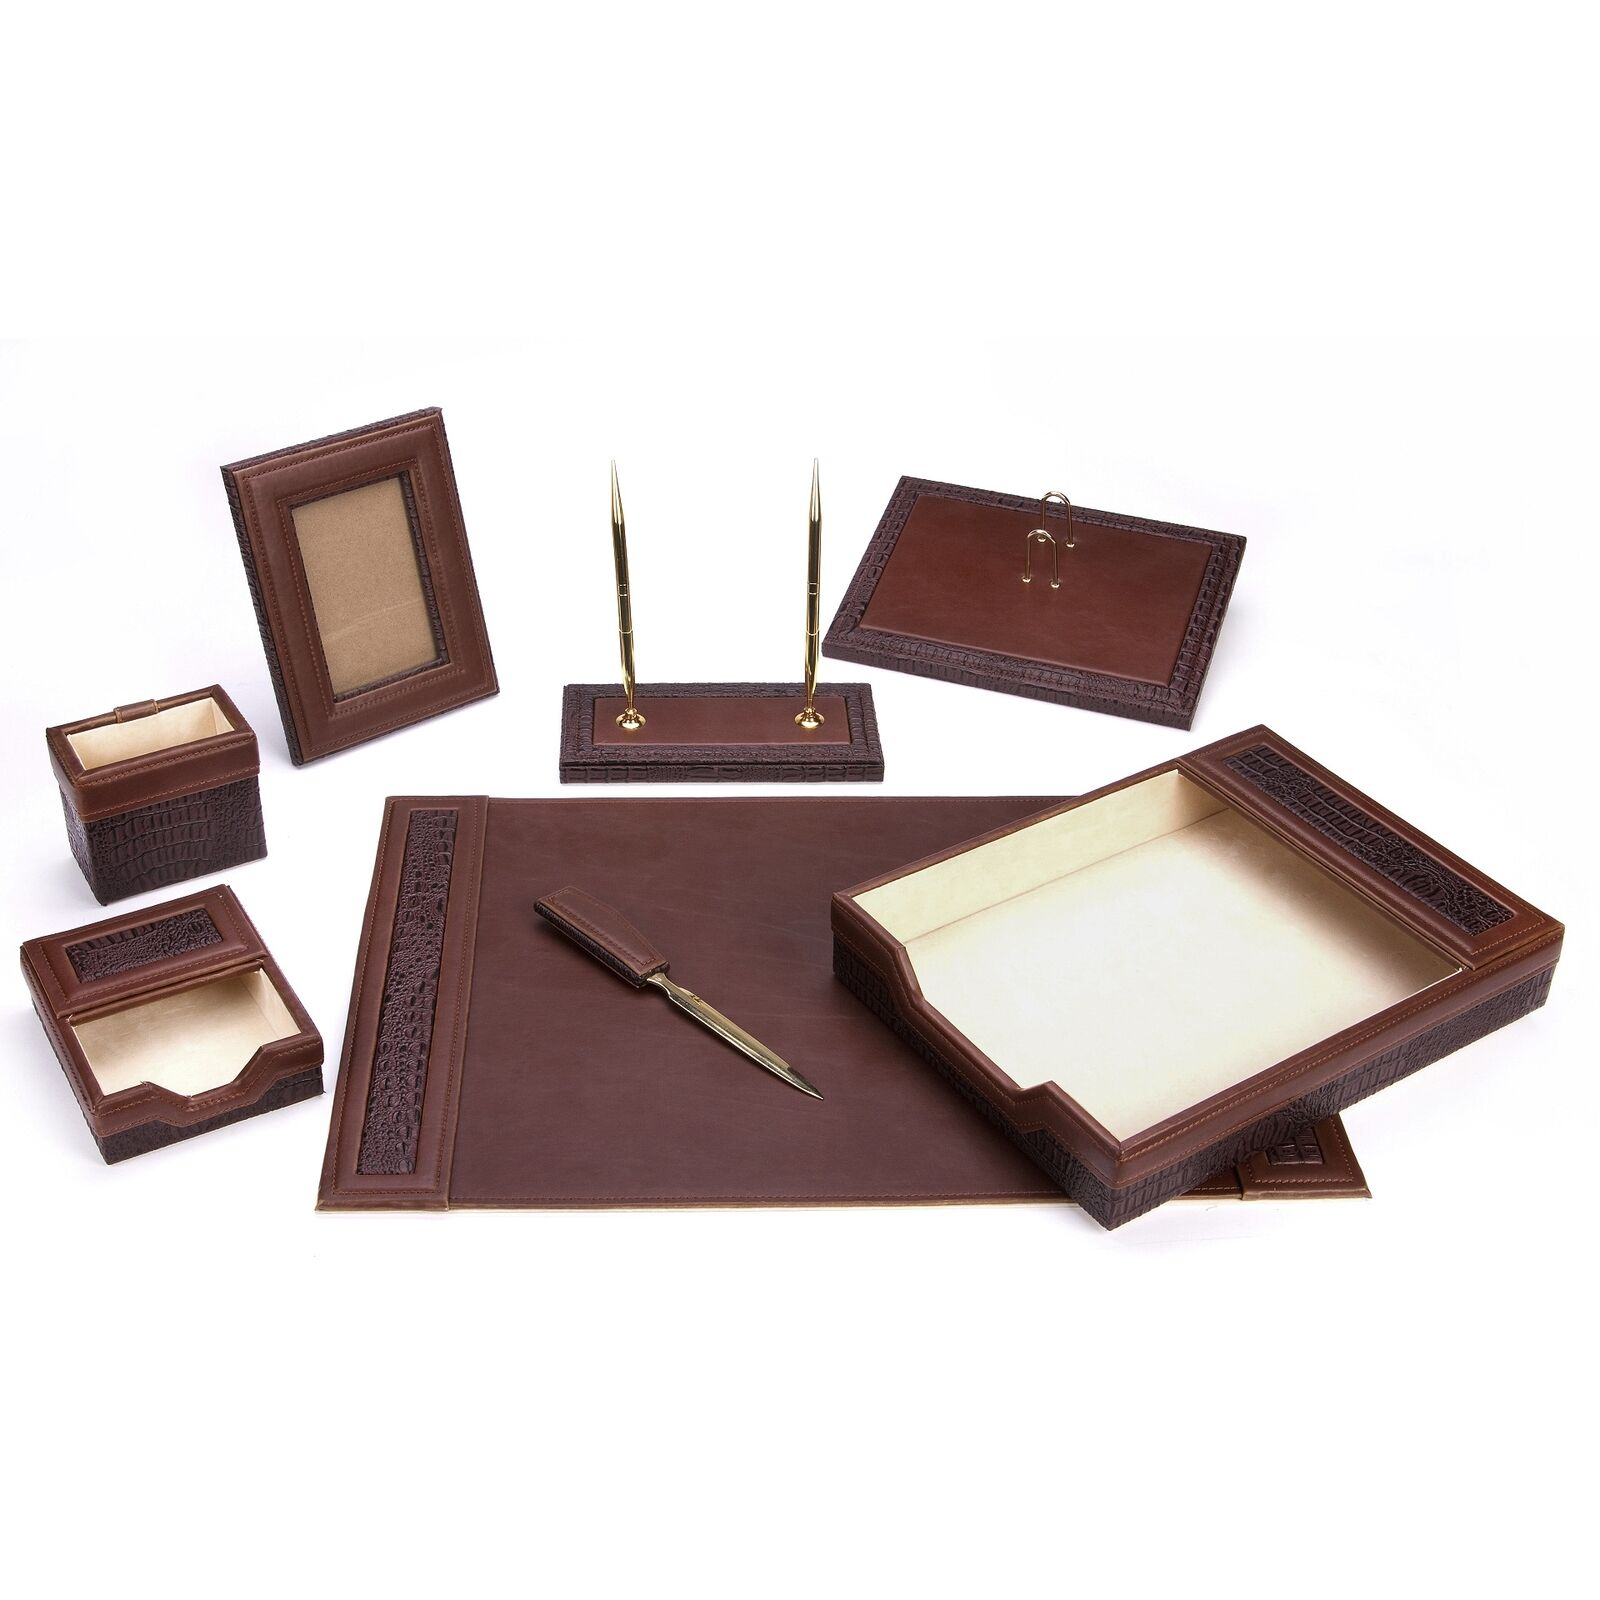 8 PCS Brown Leather Desk Set Organizer Home Office Table Supply Storage Sorter